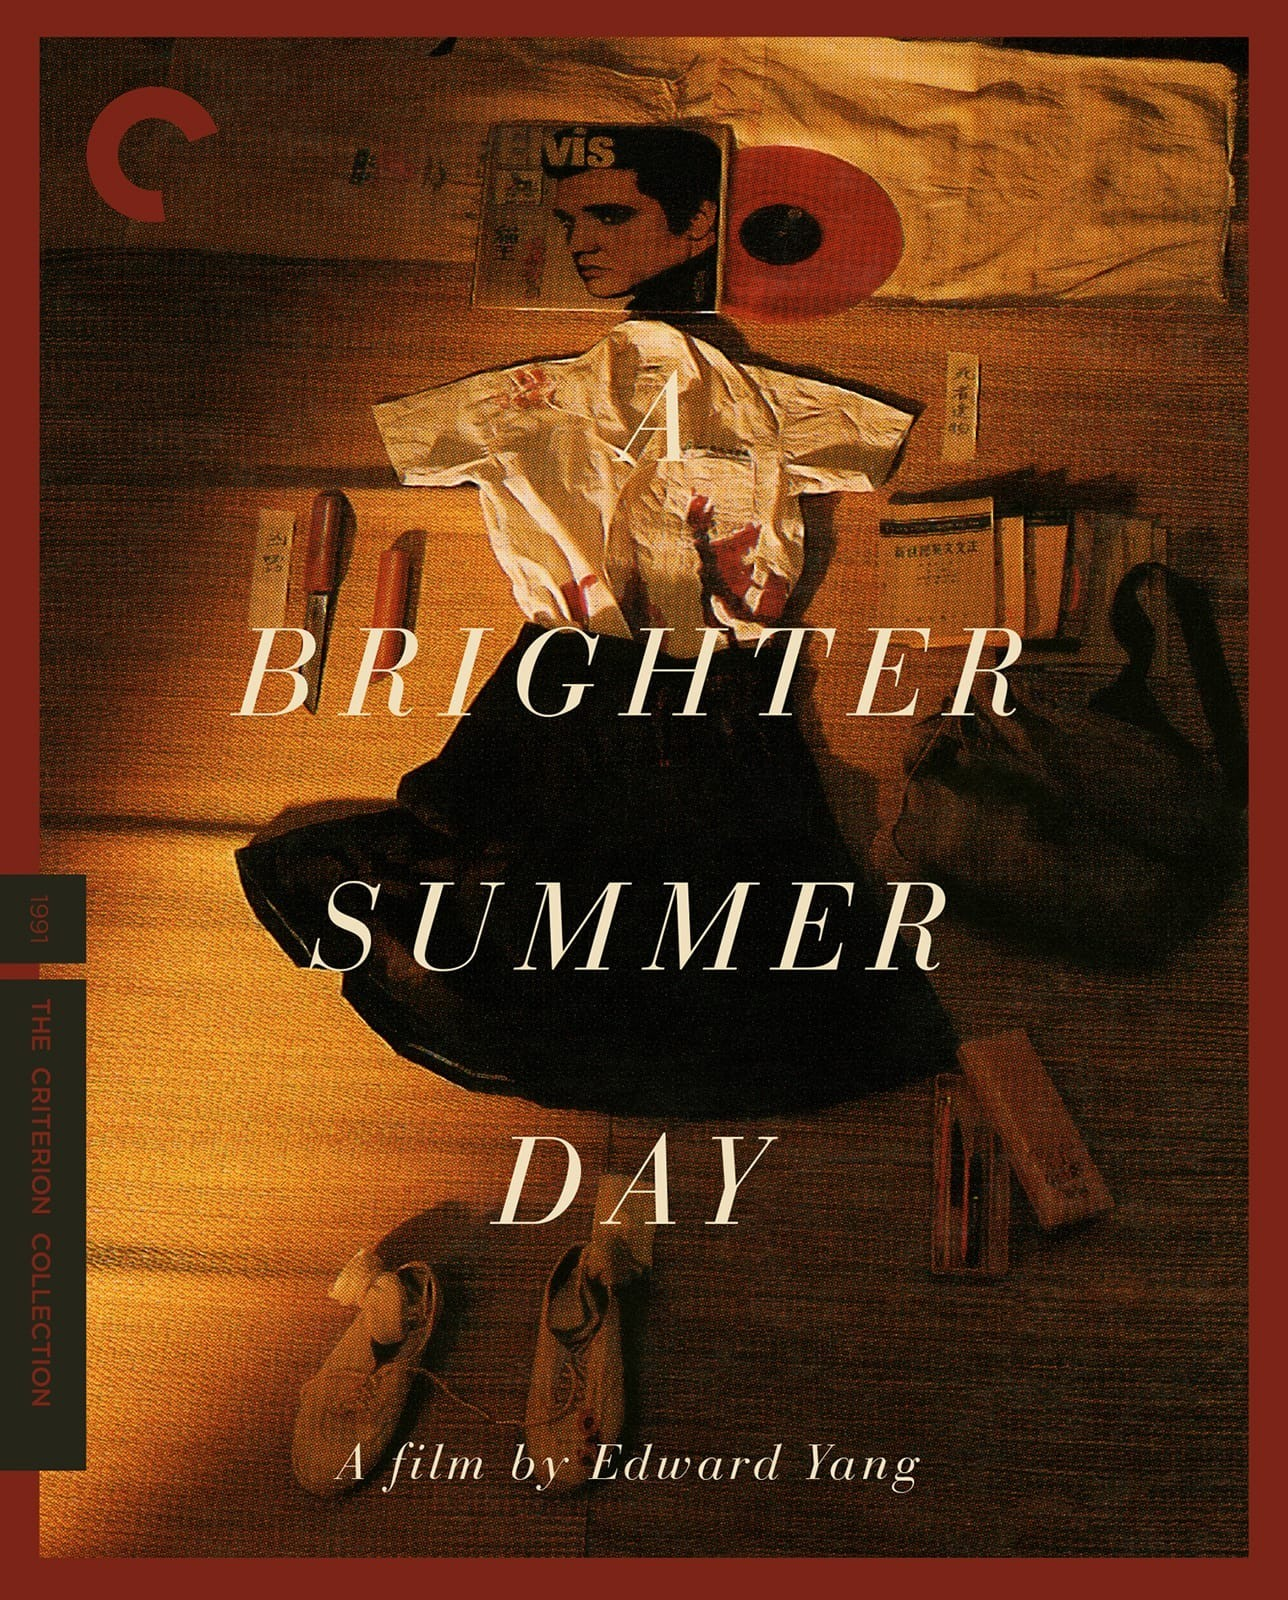 A Brighter Summer Day (1991)(The Criterion Collection) Blu-ray